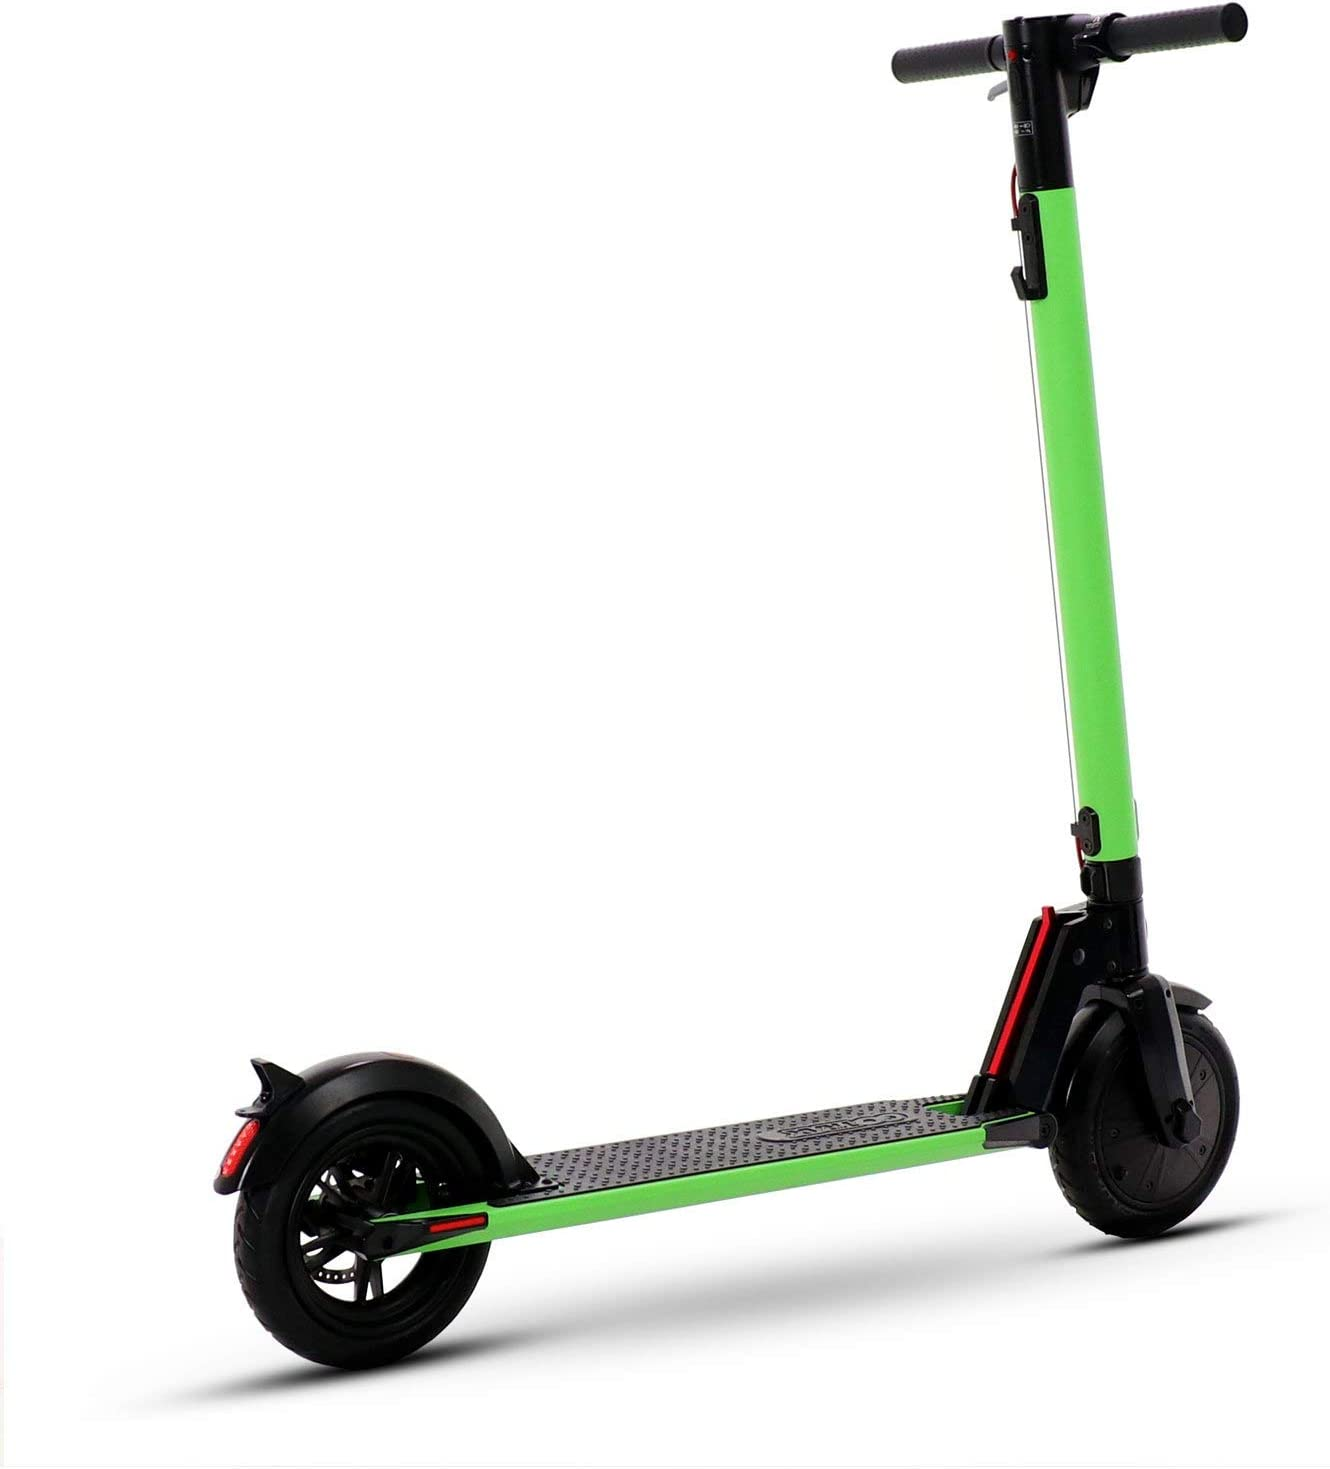 Gotrax GXL V2 Green 250W 36v Lithium Folding Adult Electric Scooter